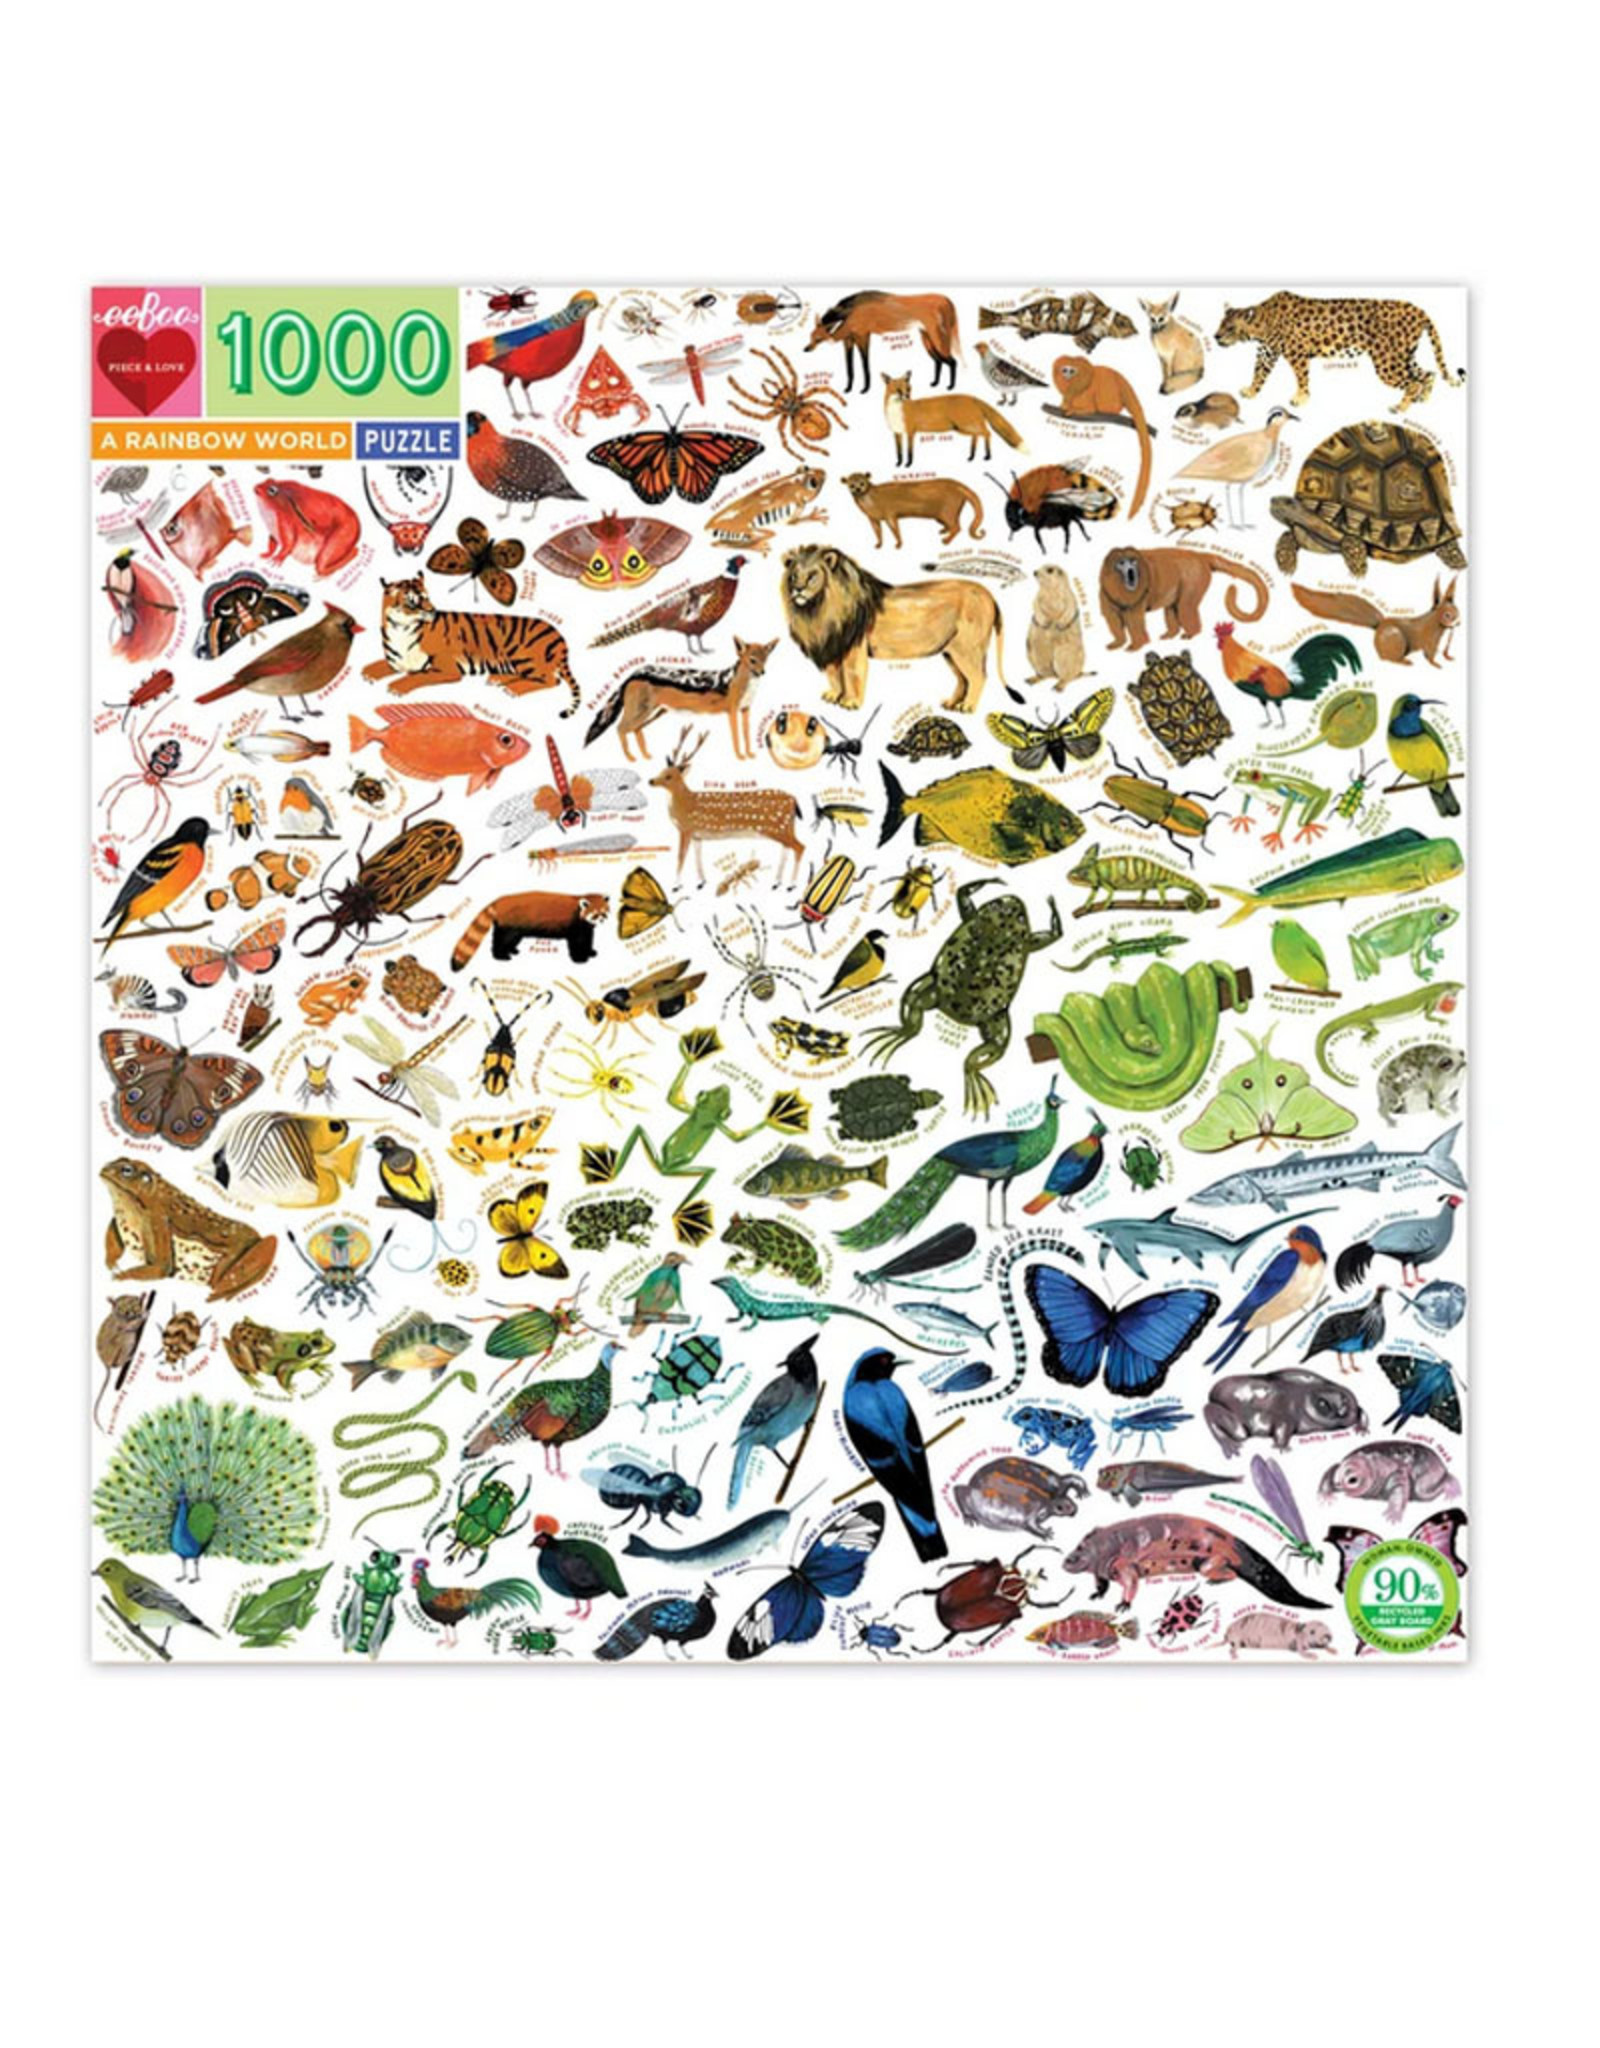 Puzzle 1000 piece: A Rainbow World